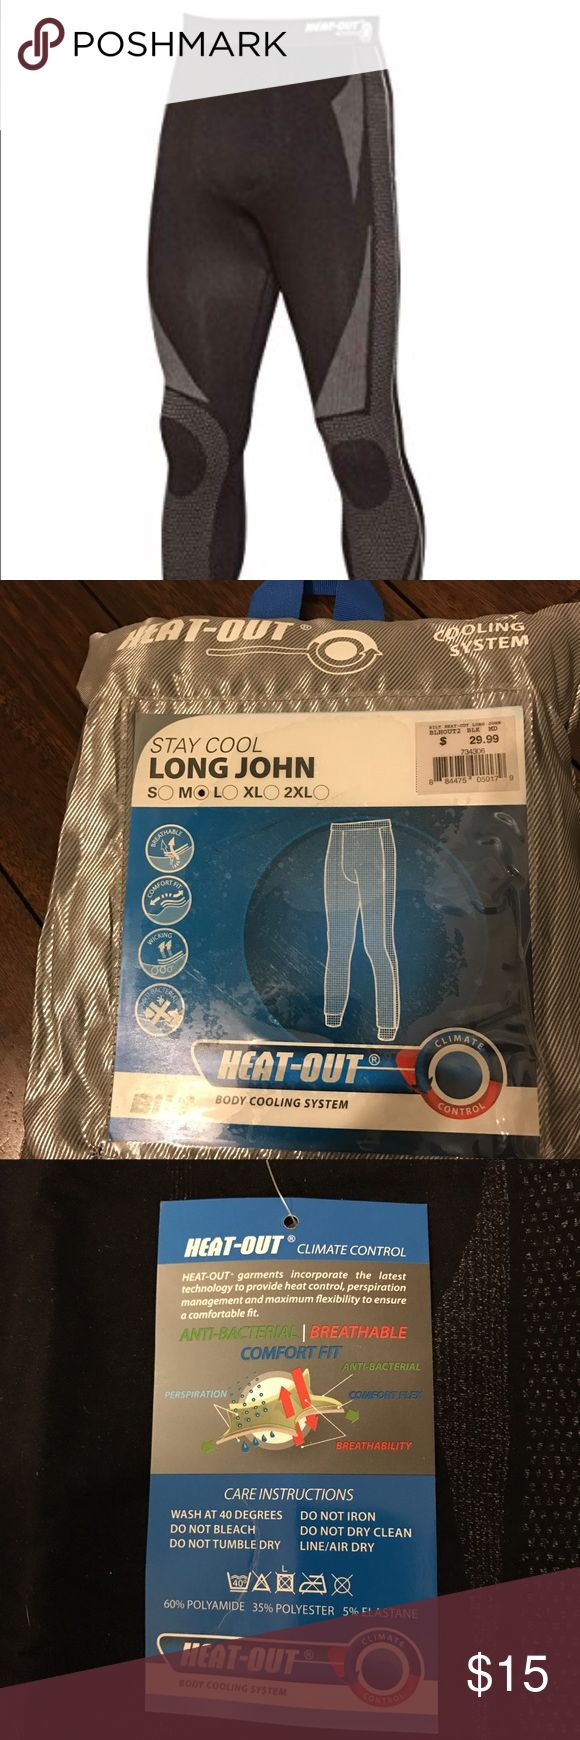 Bilt heat-out under armor Heat-out is a breathable under layer for when in the heat or working out quick dry material is breathable & durable bilt Underwear & Socks